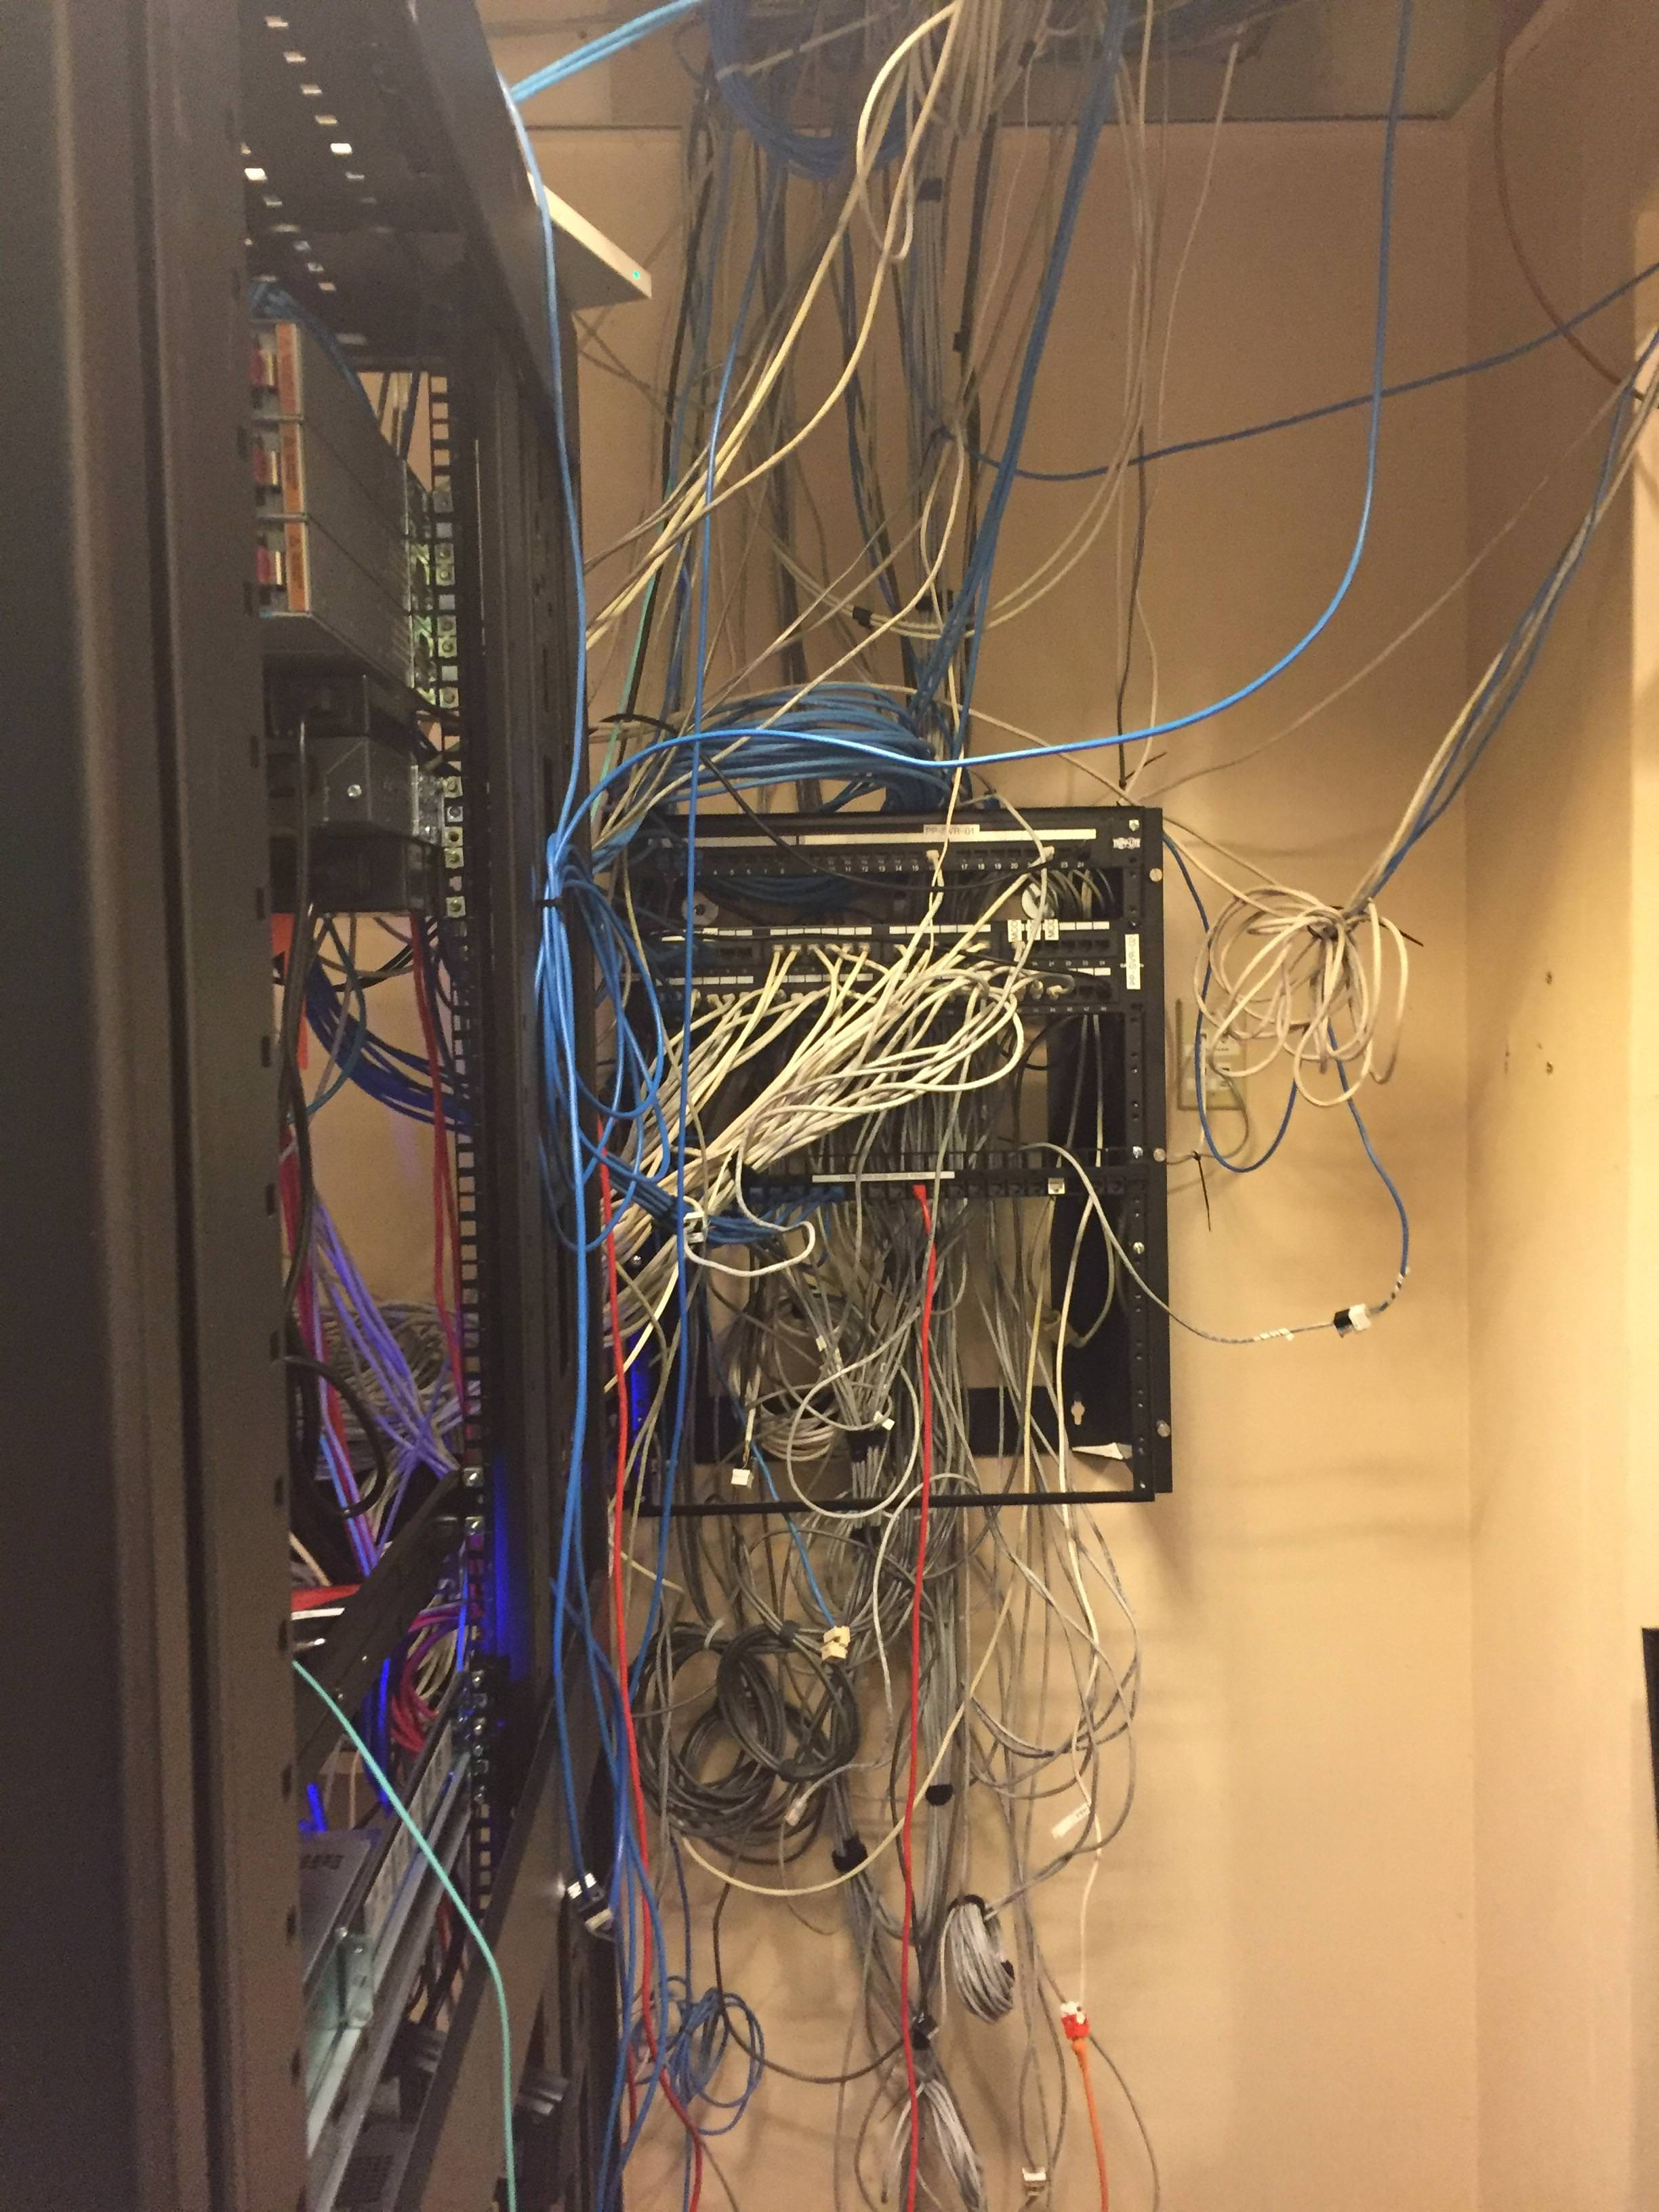 Happy New Year What Are Your Networking Resolutions The Meraki Wiring Closet Mess Community